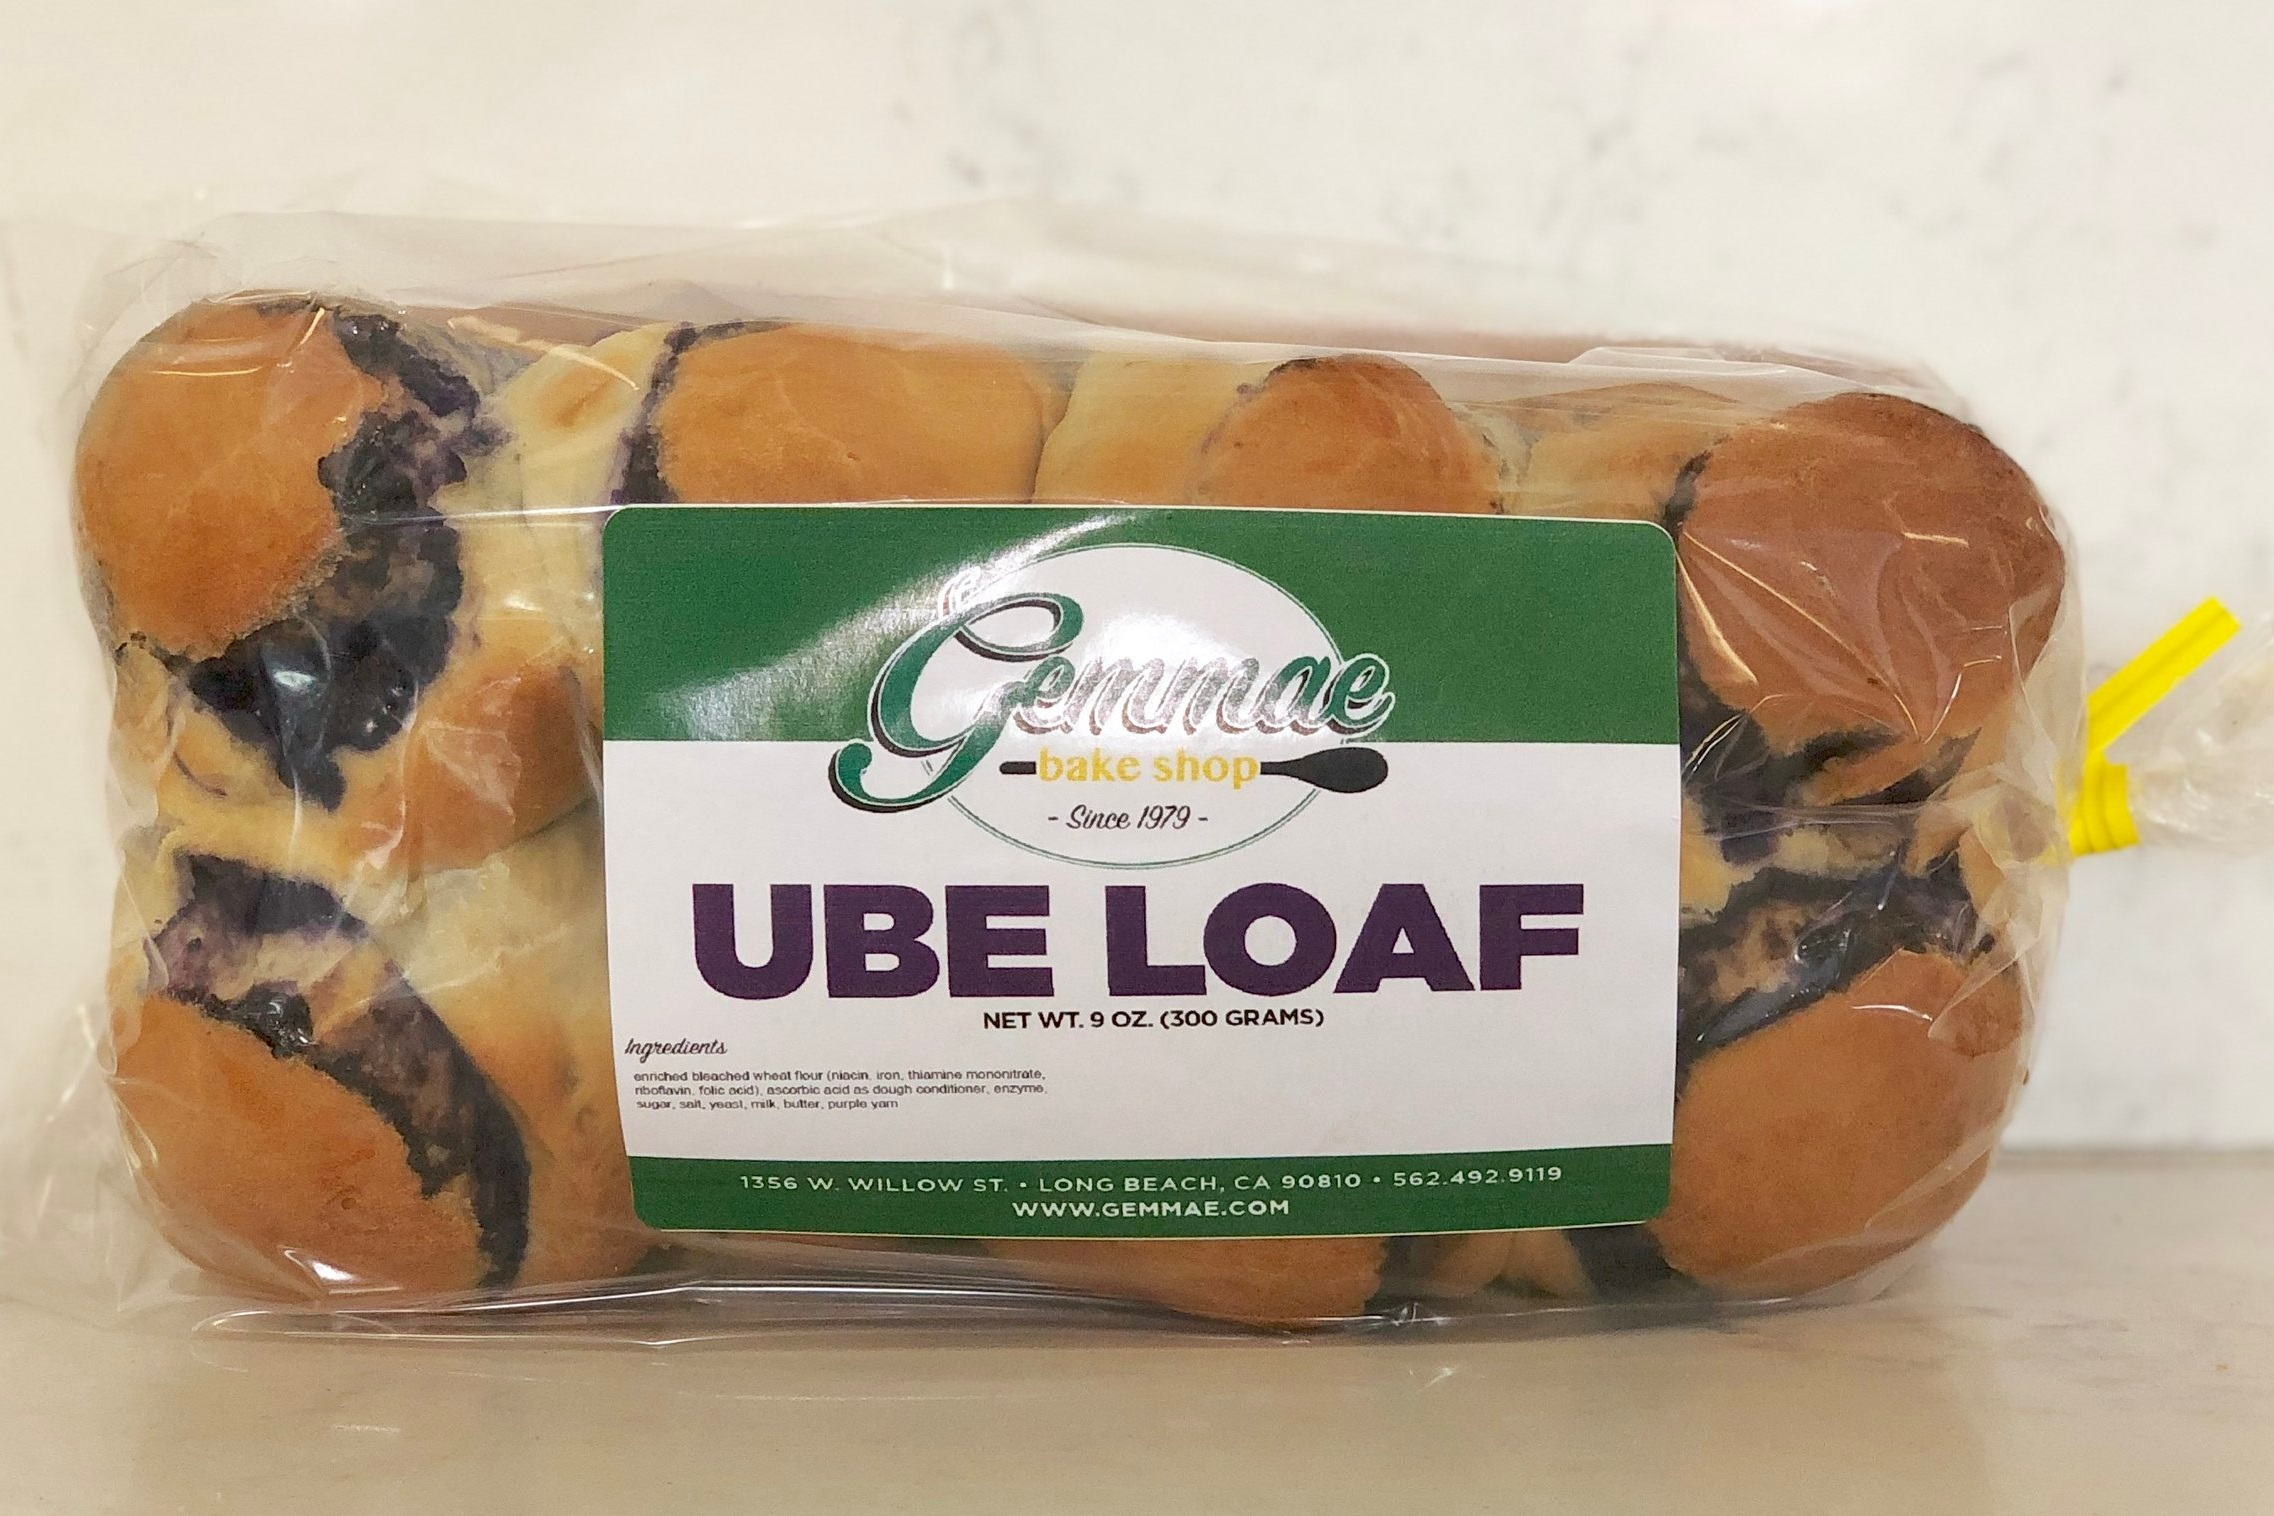 UBE LOAF   Our signature Ube Halaya braided between buttery bread dough.